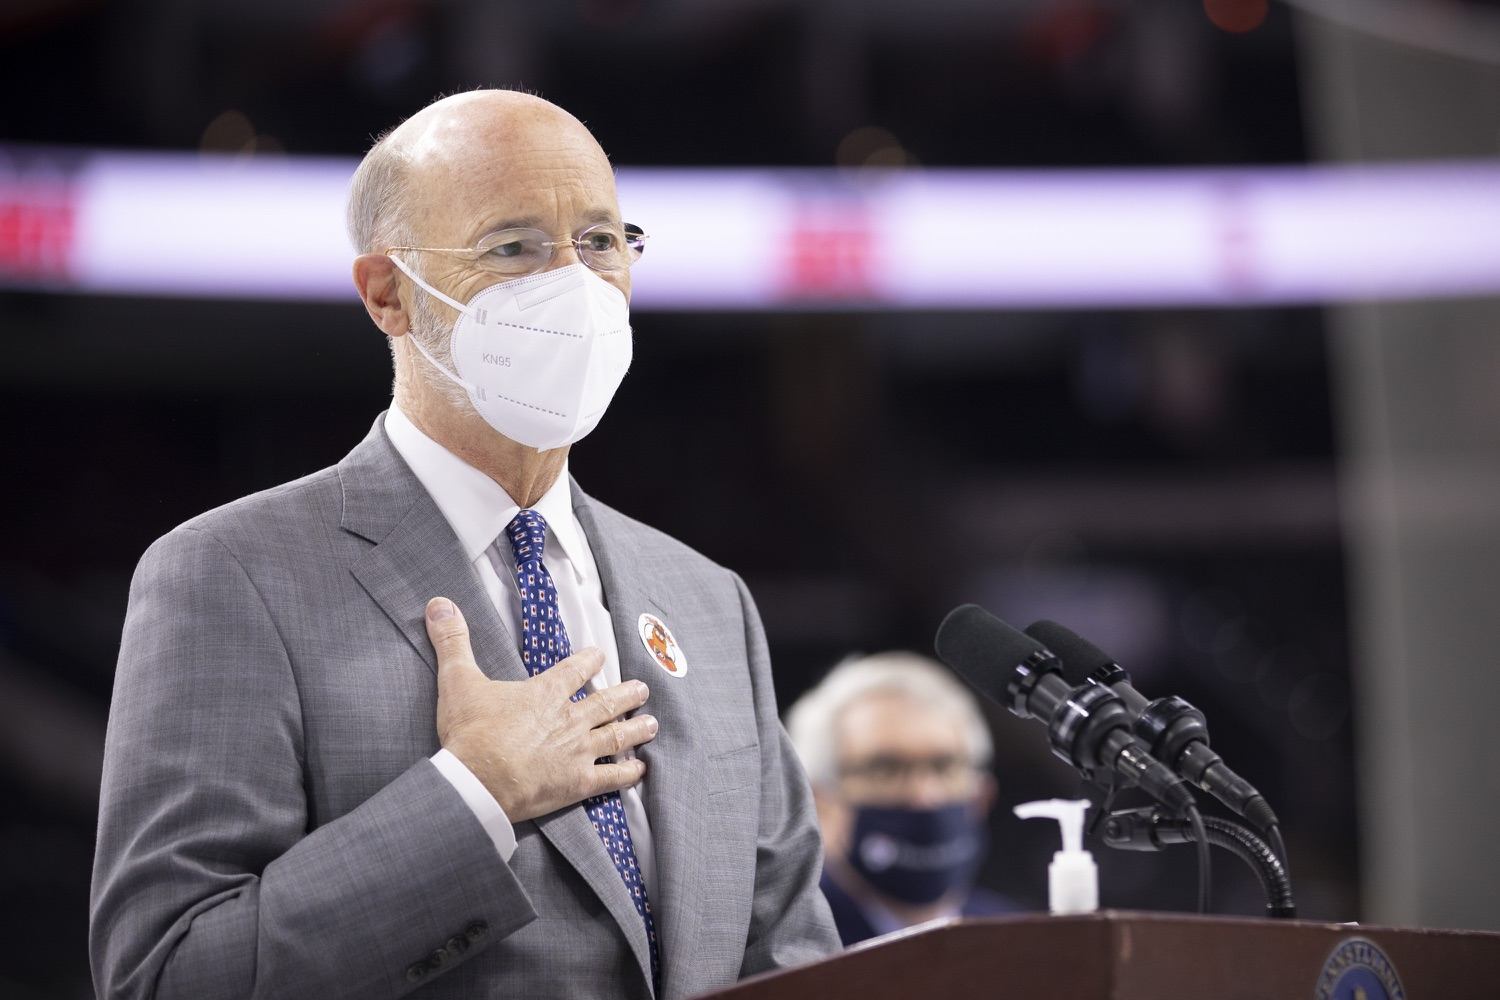 "<a href=""https://filesource.wostreaming.net/commonwealthofpa/photo/18727_gov_vaccines_dz_004.JPG"" target=""_blank"">⇣ Download Photo<br></a>Pennsylvania Governor Tom Wolf speaking with the press.   Governor Tom Wolf today visited the Philadelphia Flyers organization at the Wells Fargo Center in Philadelphia to discuss COVID-19 vaccine efforts in Pennsylvania. The Flyers recently launched a comprehensive COVID-19 vaccine campaign, Take Your Shot, encouraging Pennsylvanians to get vaccinated.  Philadelphia, PA  MAY 3, 2021"